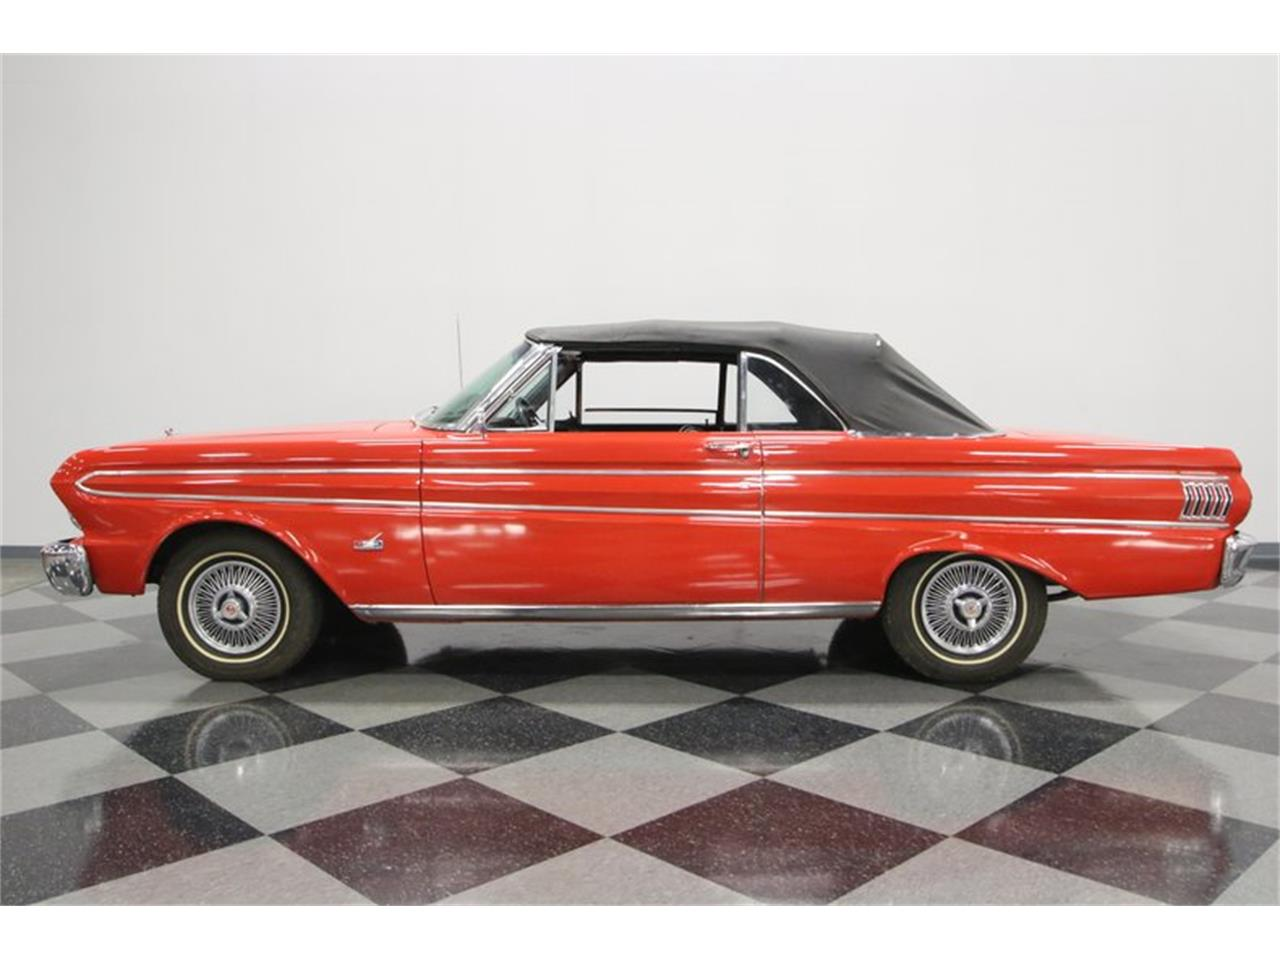 1964 Ford Falcon Futura for sale in Lavergne, TN – photo 23